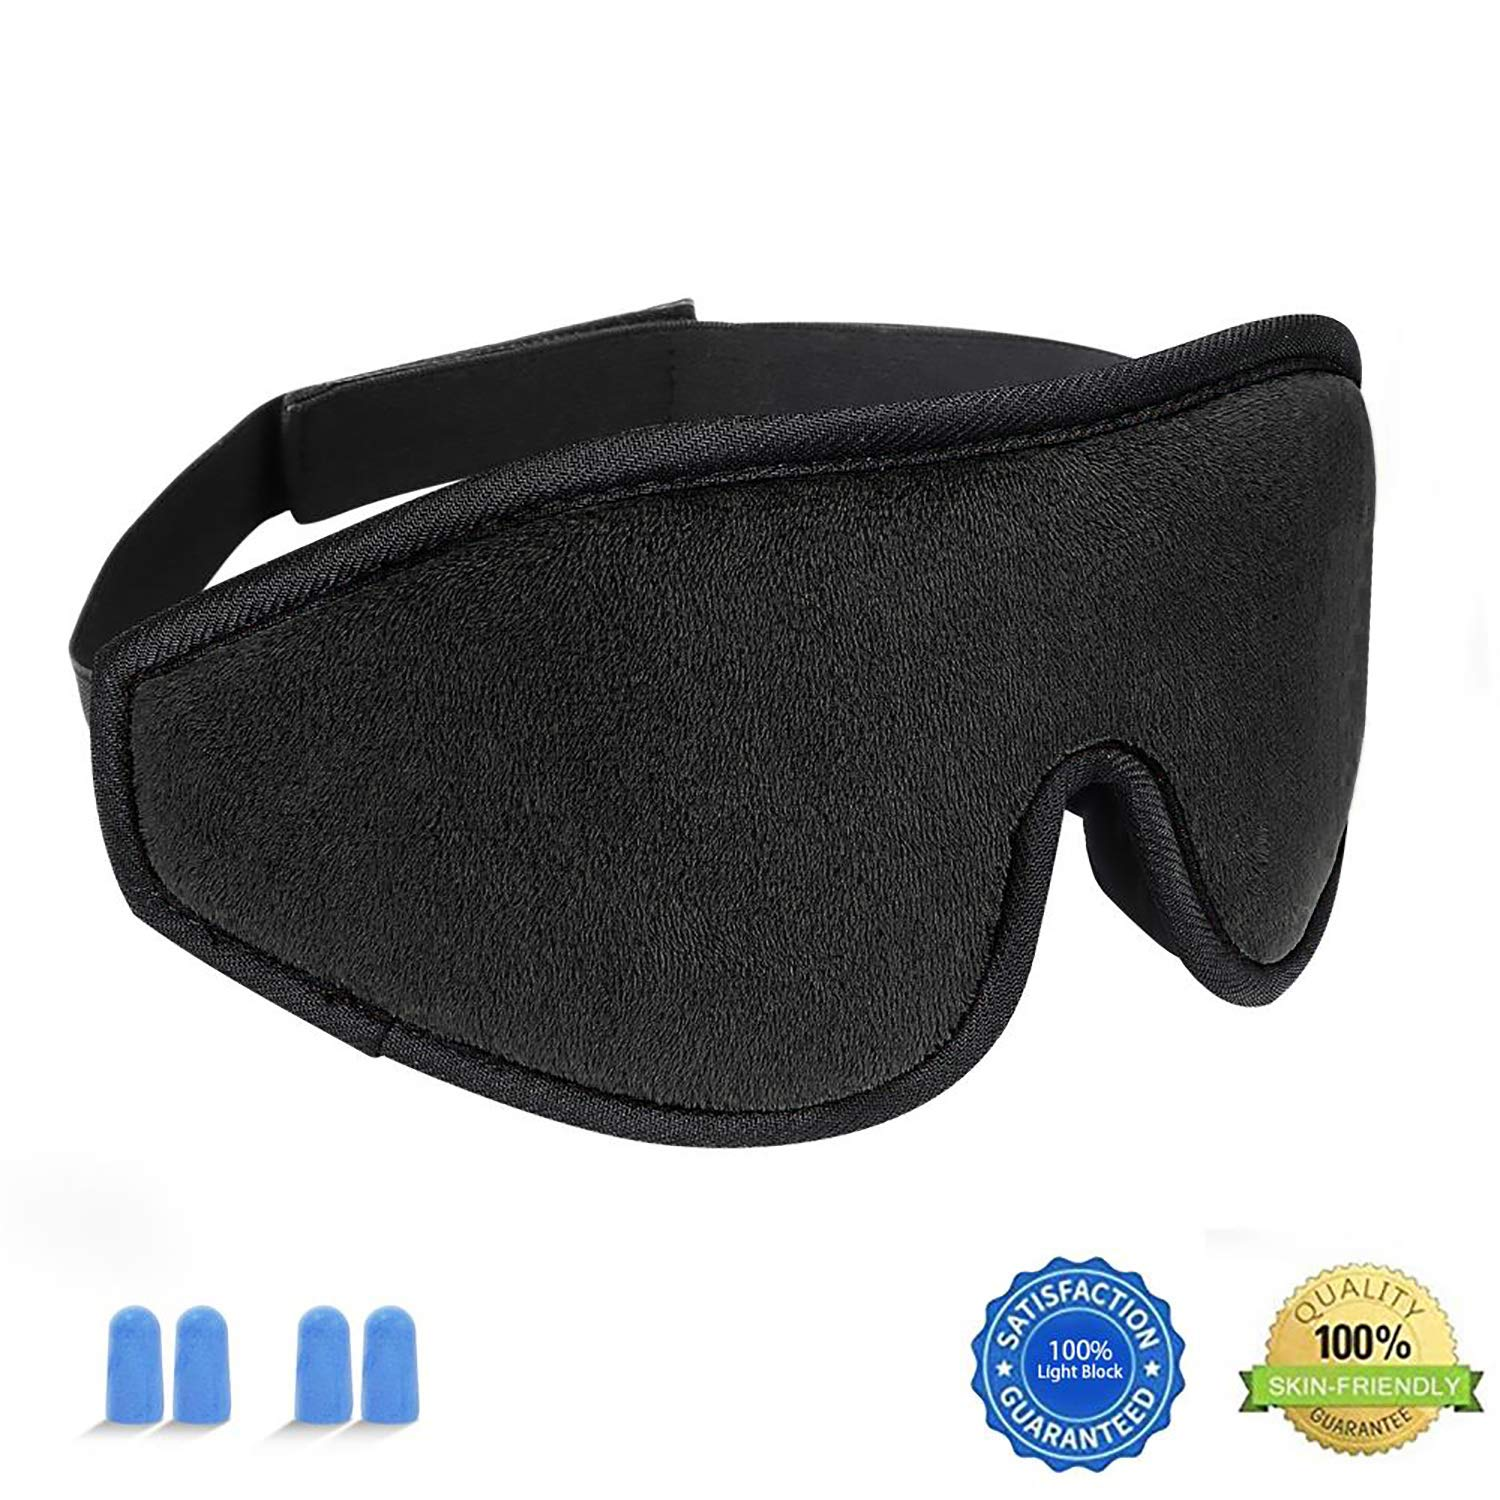 Sleep Mask For Women And Men, HYOUCHANG Upgraded [Super Soft Smooth Cotton] Lightweight 3D Eye Sleeping Mask Eye Cover [100% Light Blcok] Blindfold for Night Sleeping, Travel, Nap, Shift Works (Black)